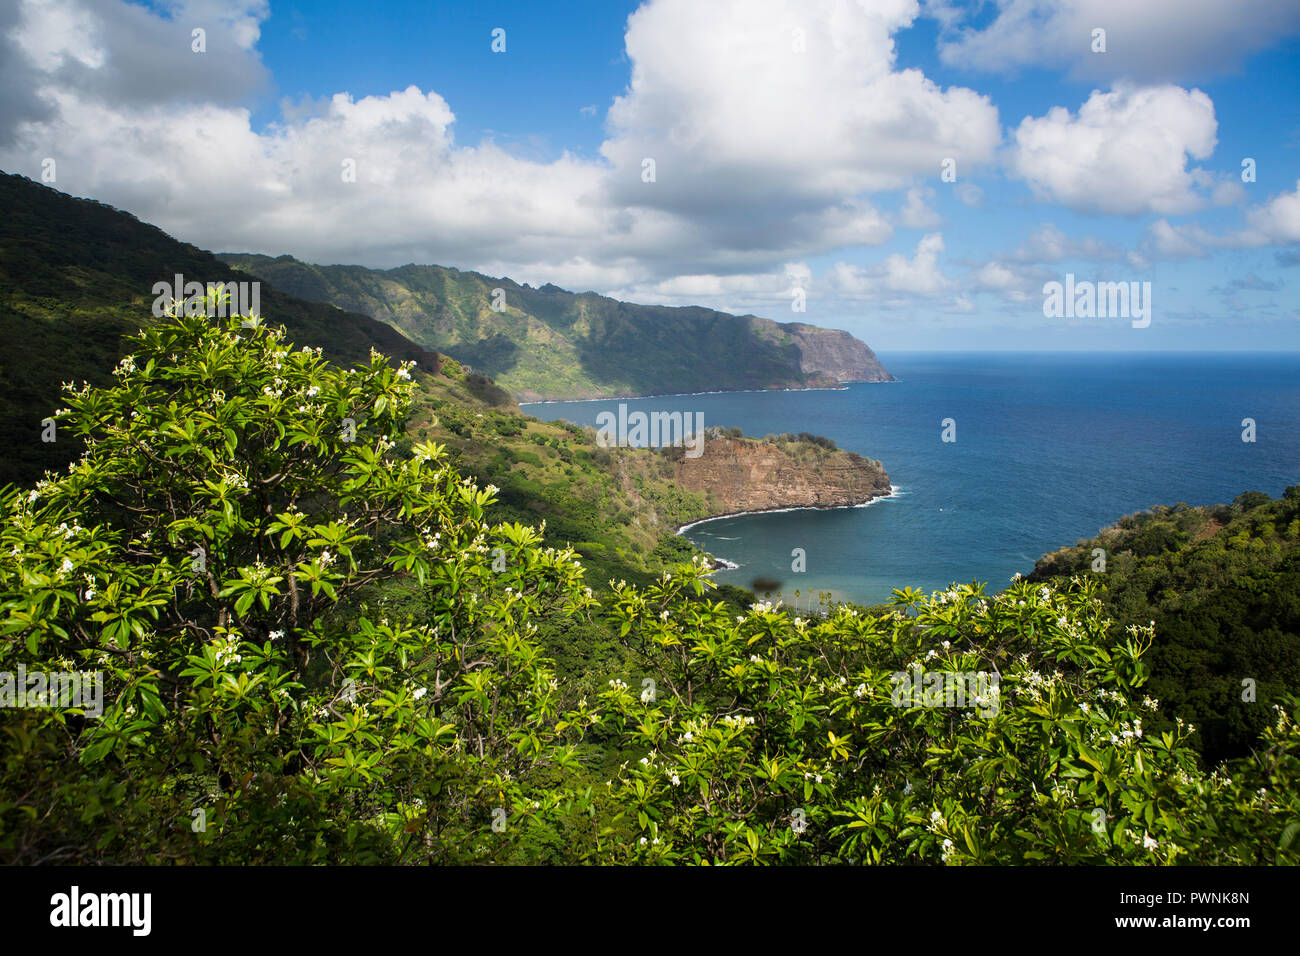 North coast of Hiva Oa Island and Matanau Bay, Marquesas Islands, French Polynesia - Stock Image